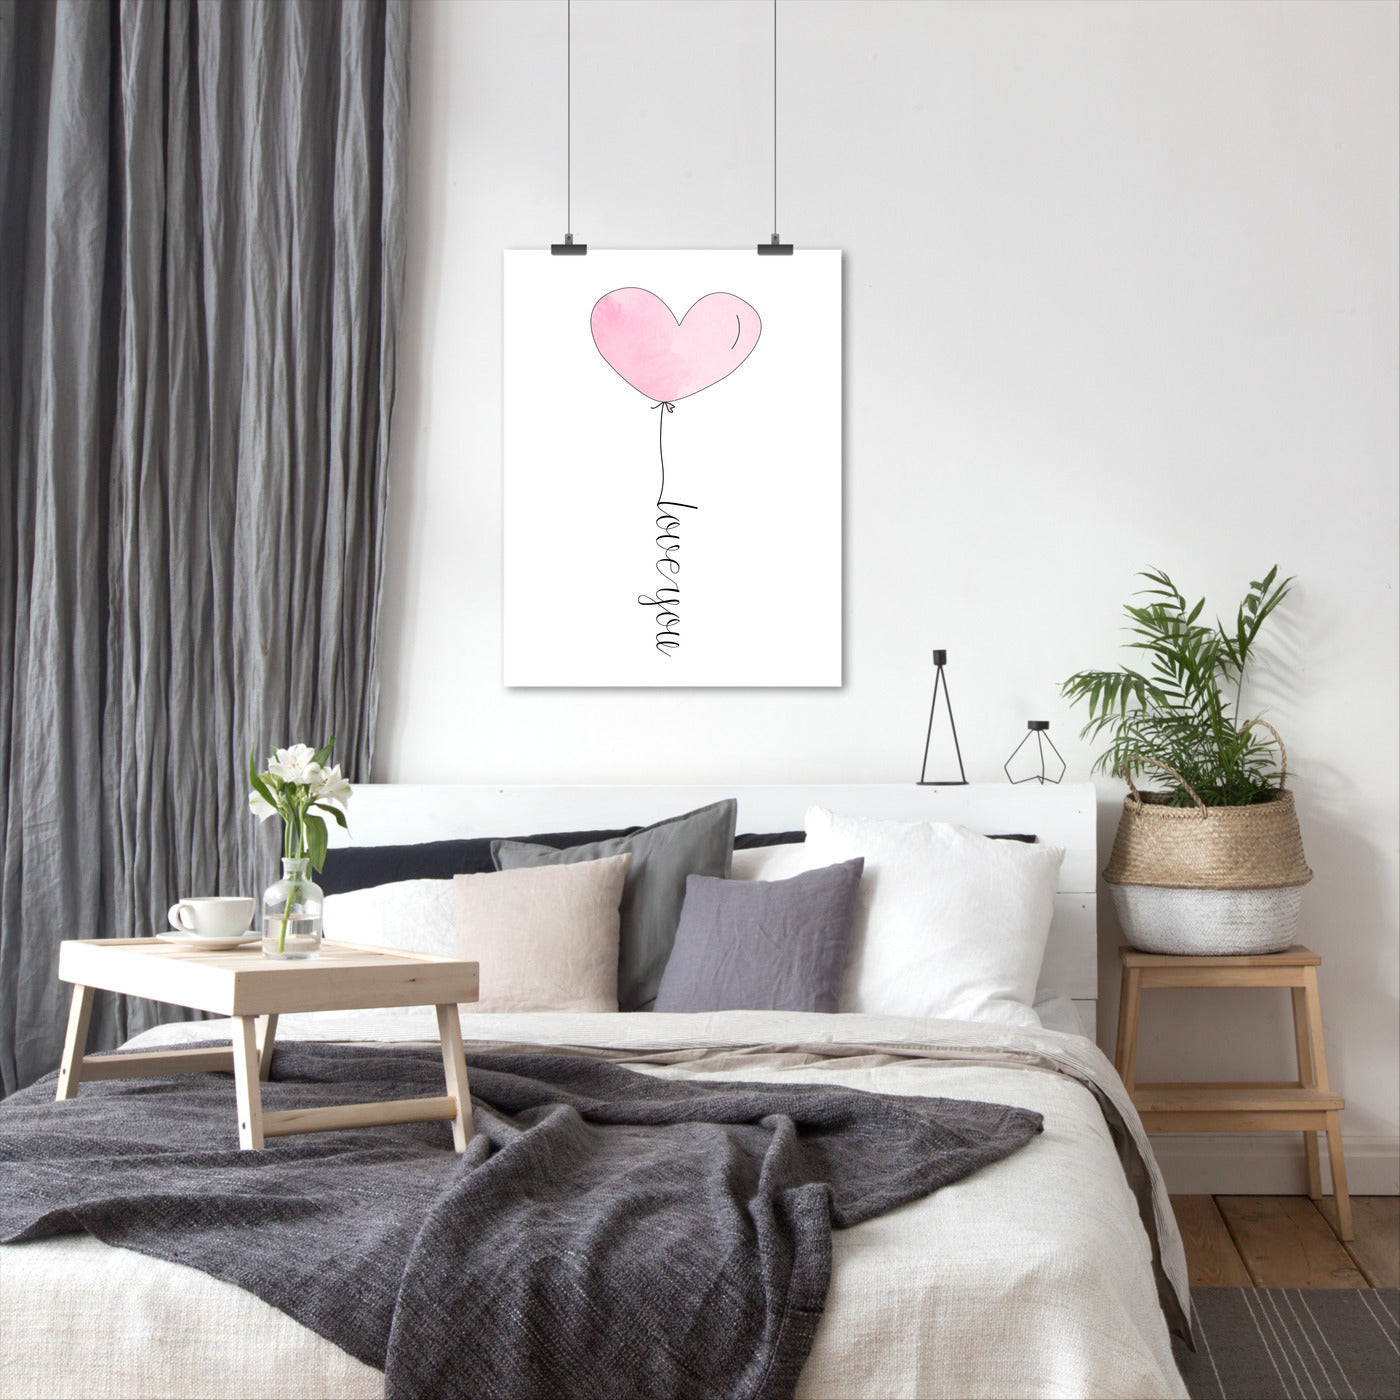 Love You Heart by Tanya Shumkina - Art Print - Americanflat